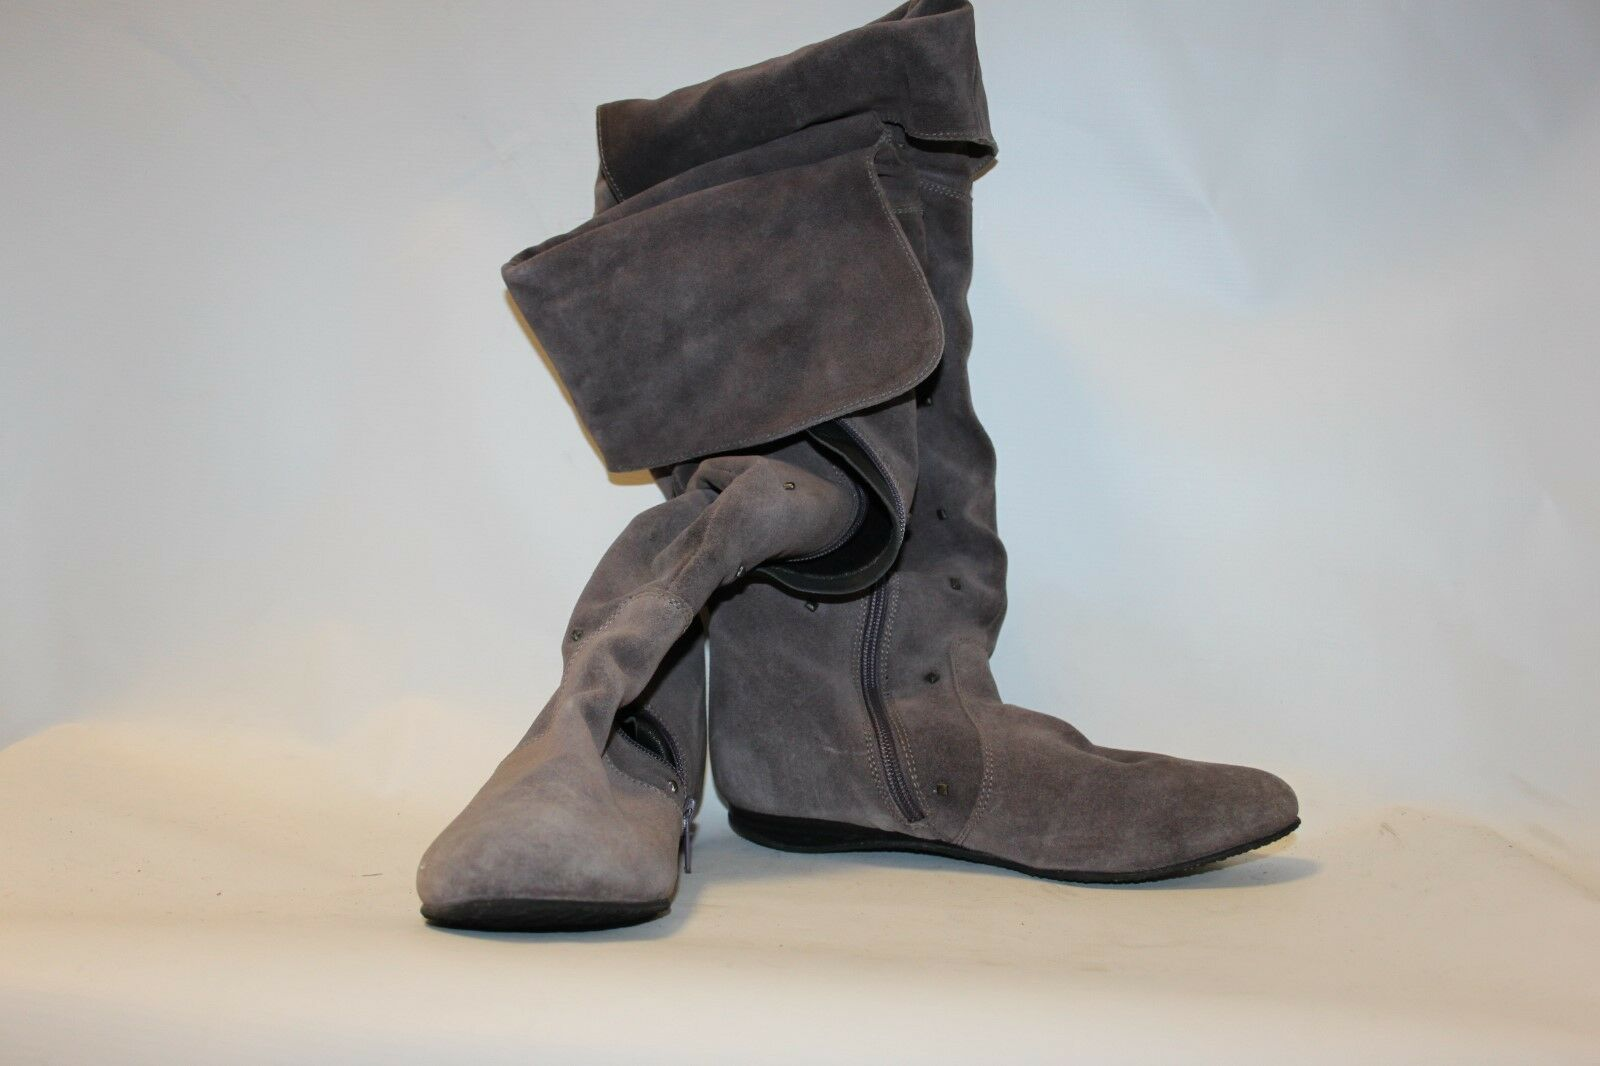 Ladies Grey Thigh High Boots Stud Detail by Grazia Size 4 Fleece Lined Flat shoes